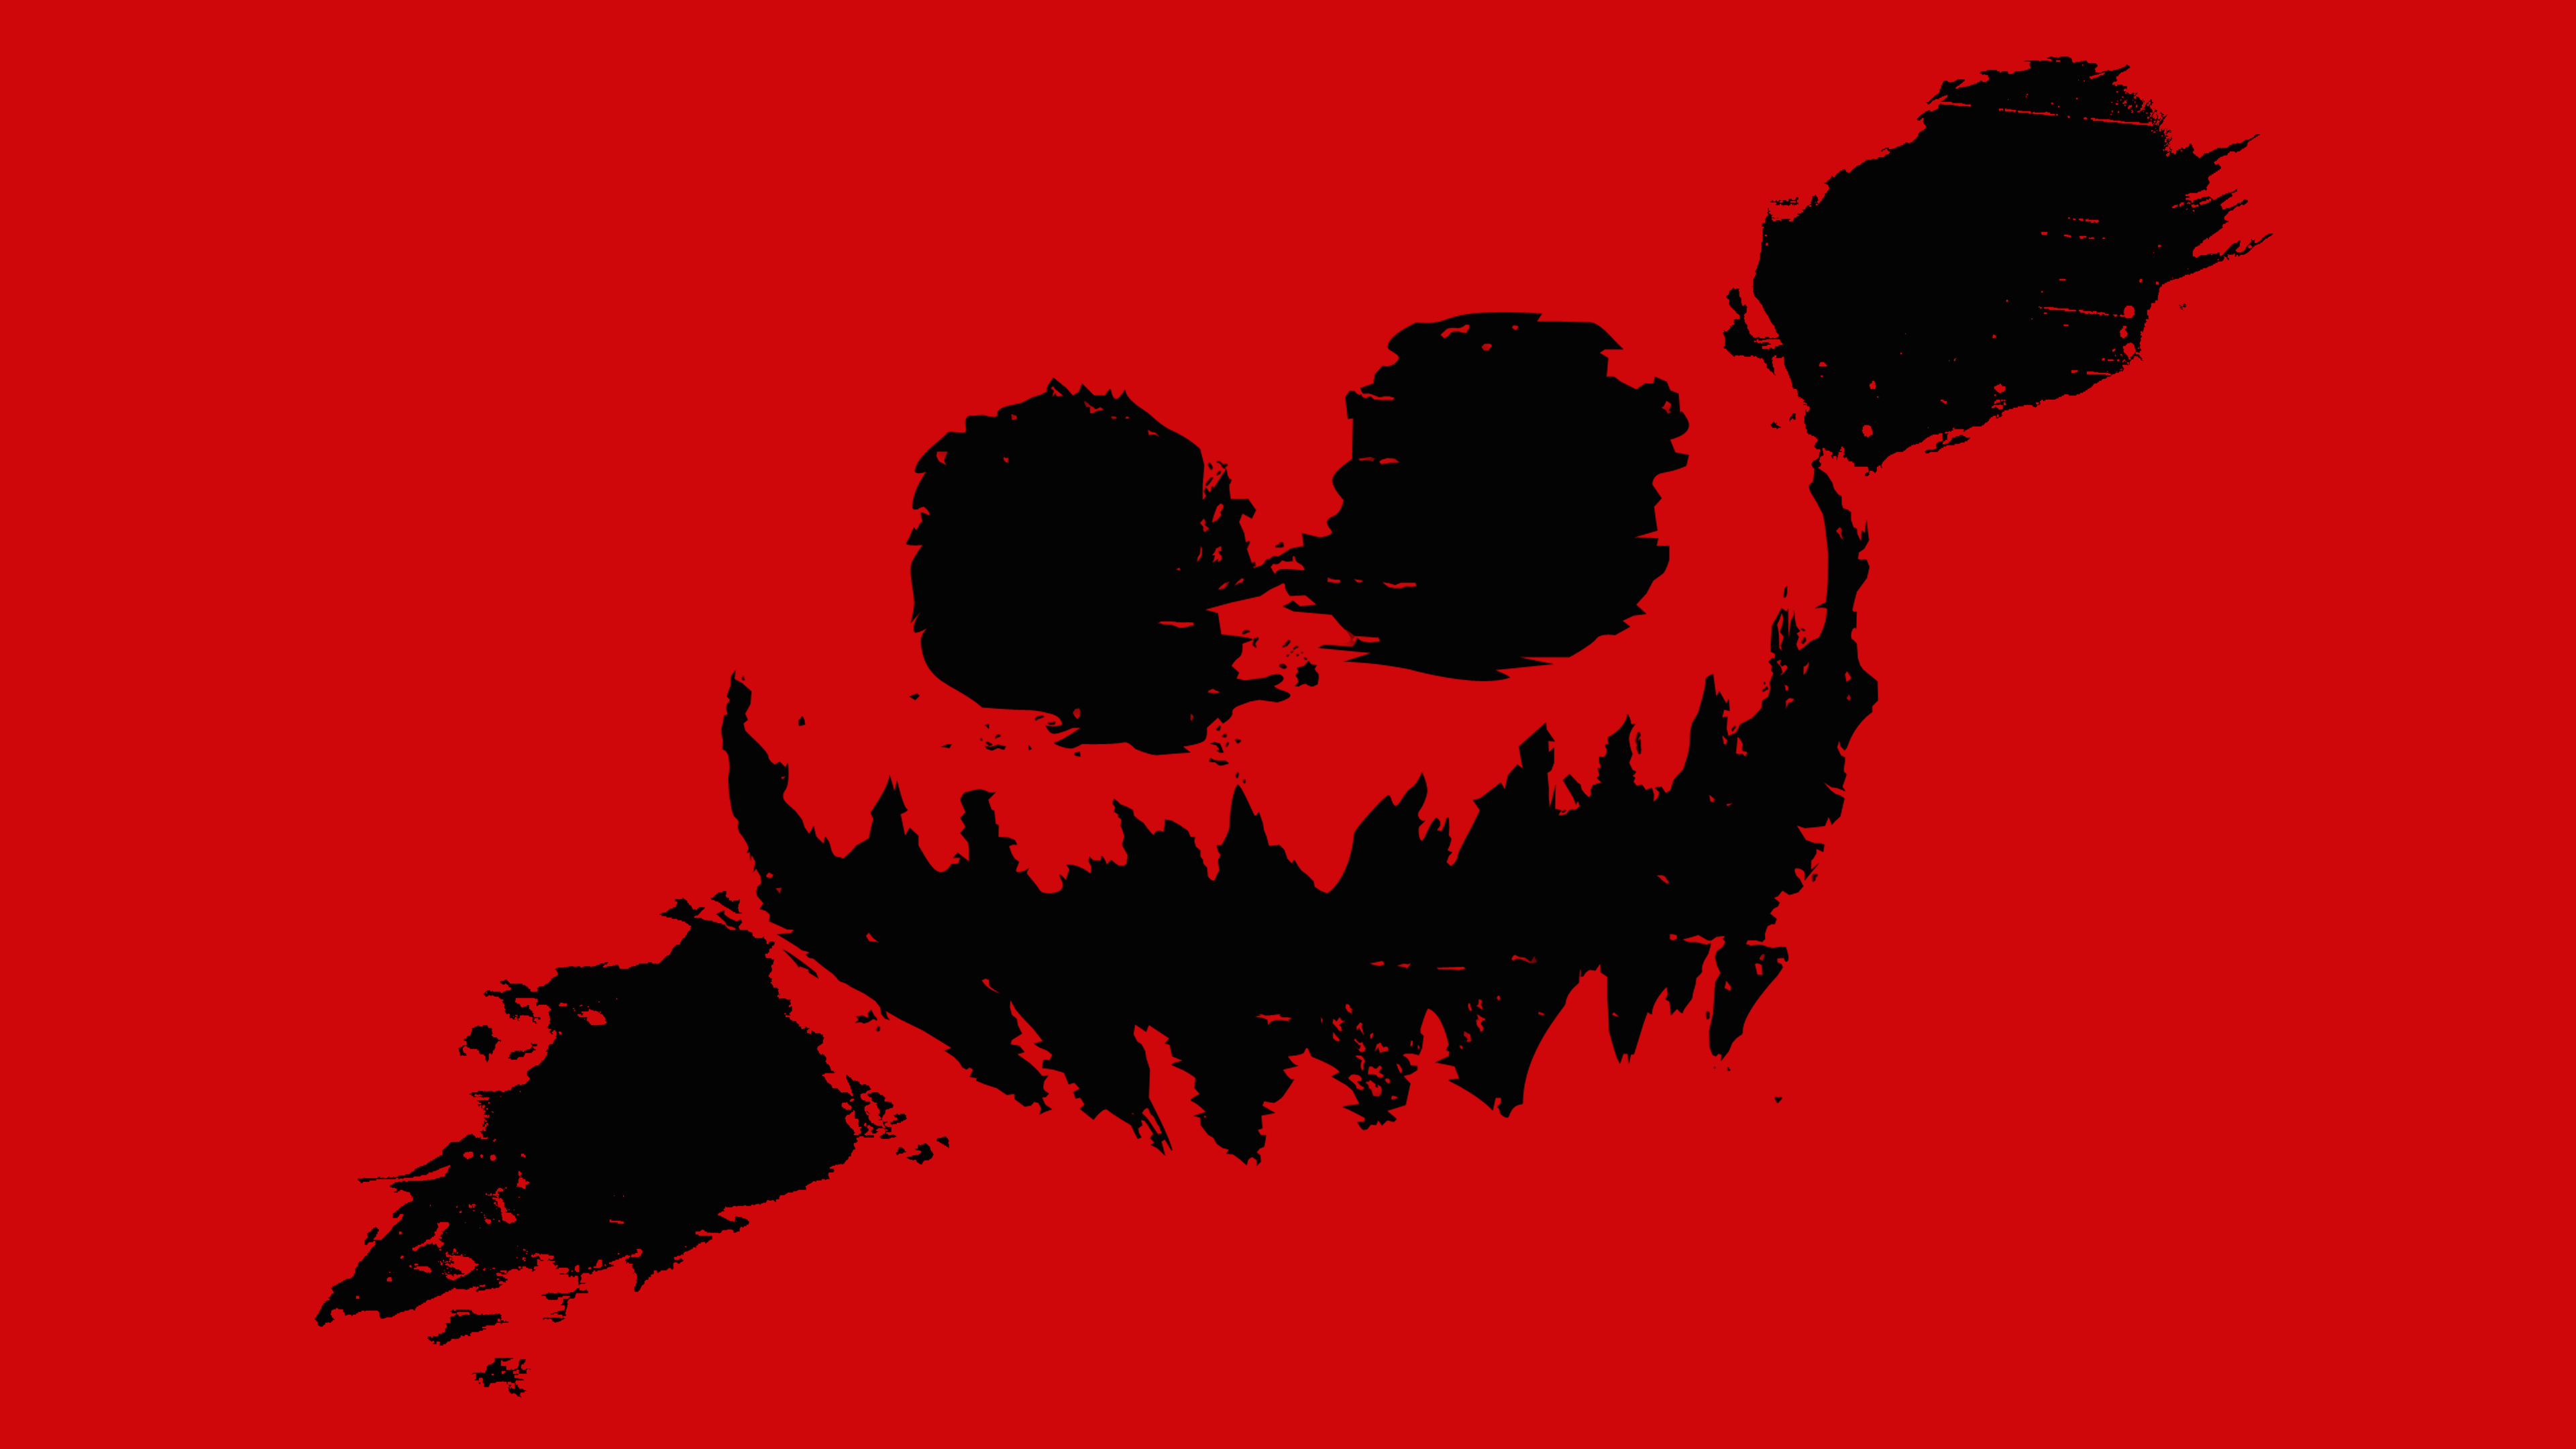 Knife Party Wallpaper Iphone Knife Party Computer W...